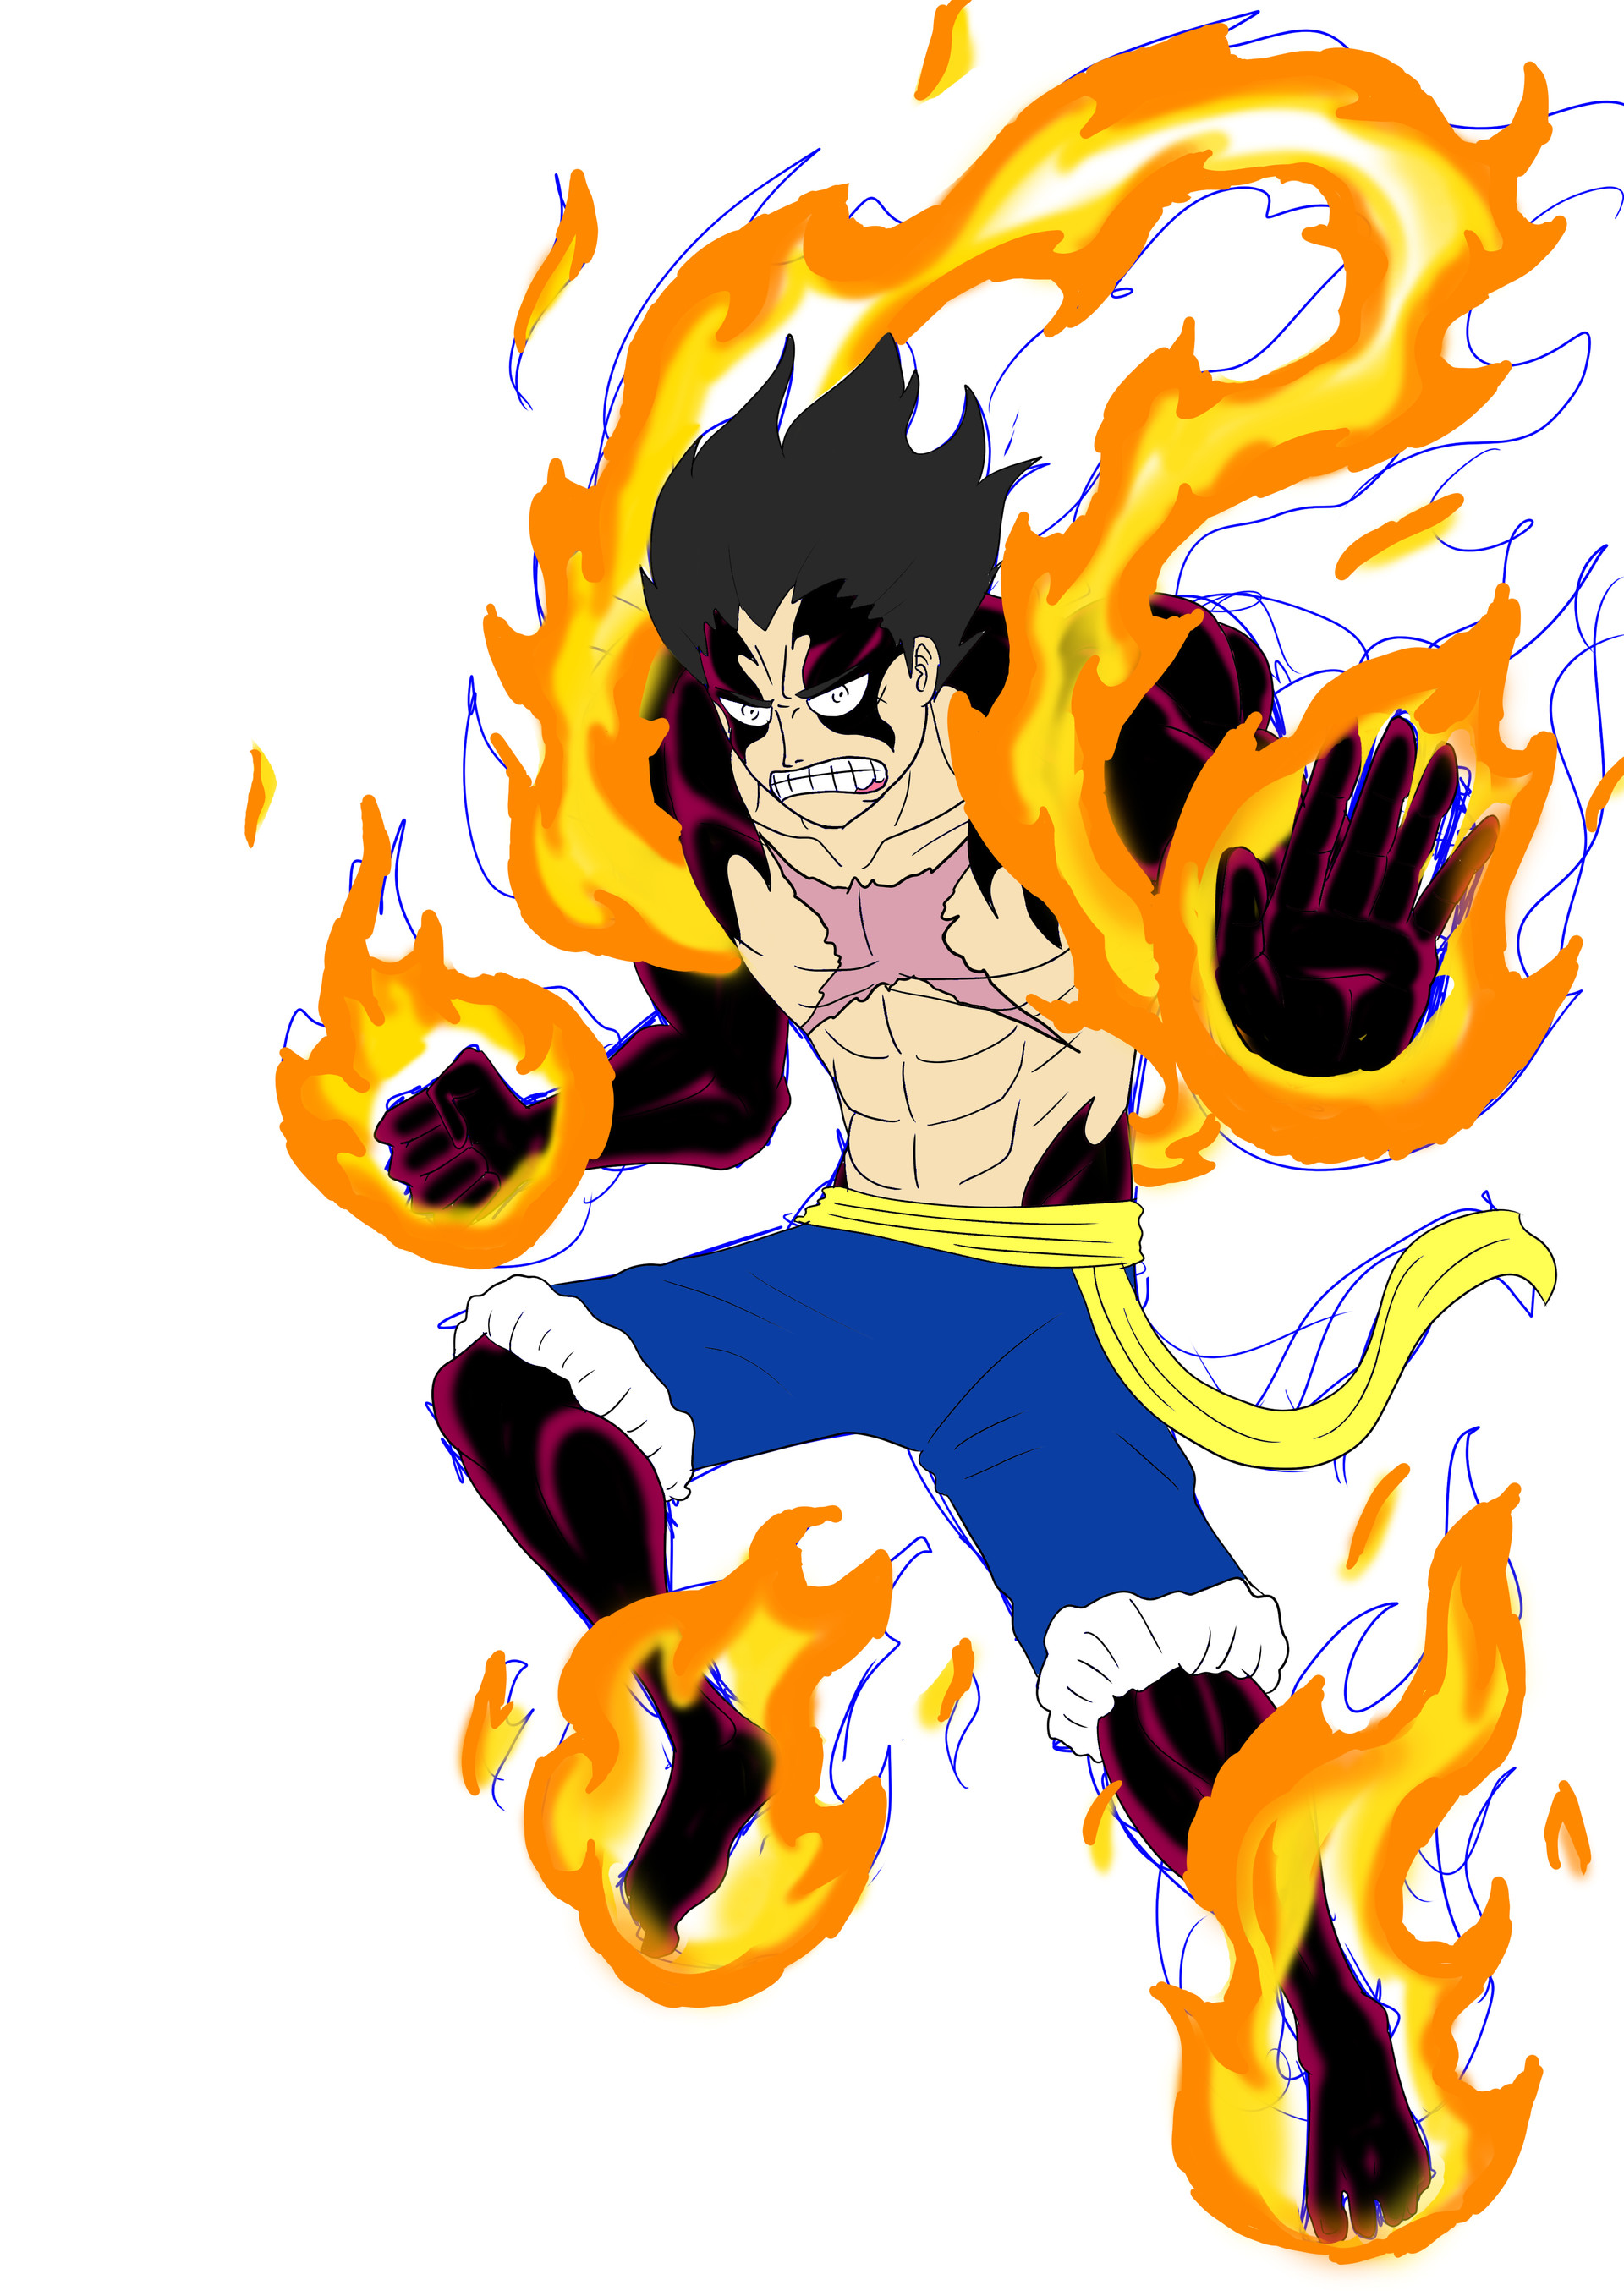 He can be obtained from the hero summon or by evolving ruffy ts. 4th Gear Luffy Red Hawk